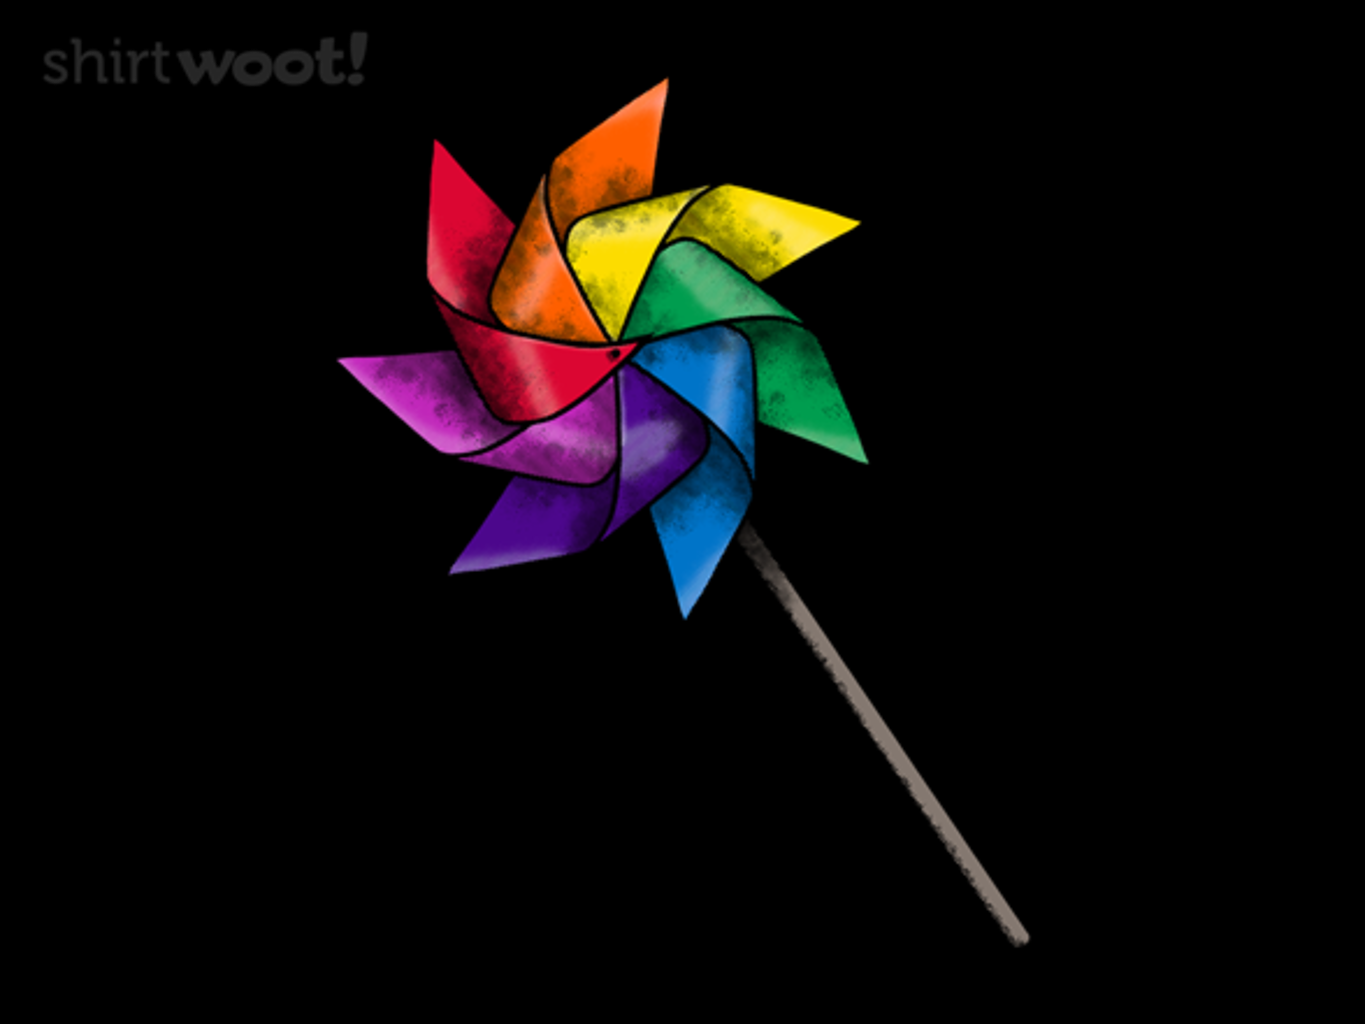 Woot!: The Wind Bow - $15.00 + Free shipping